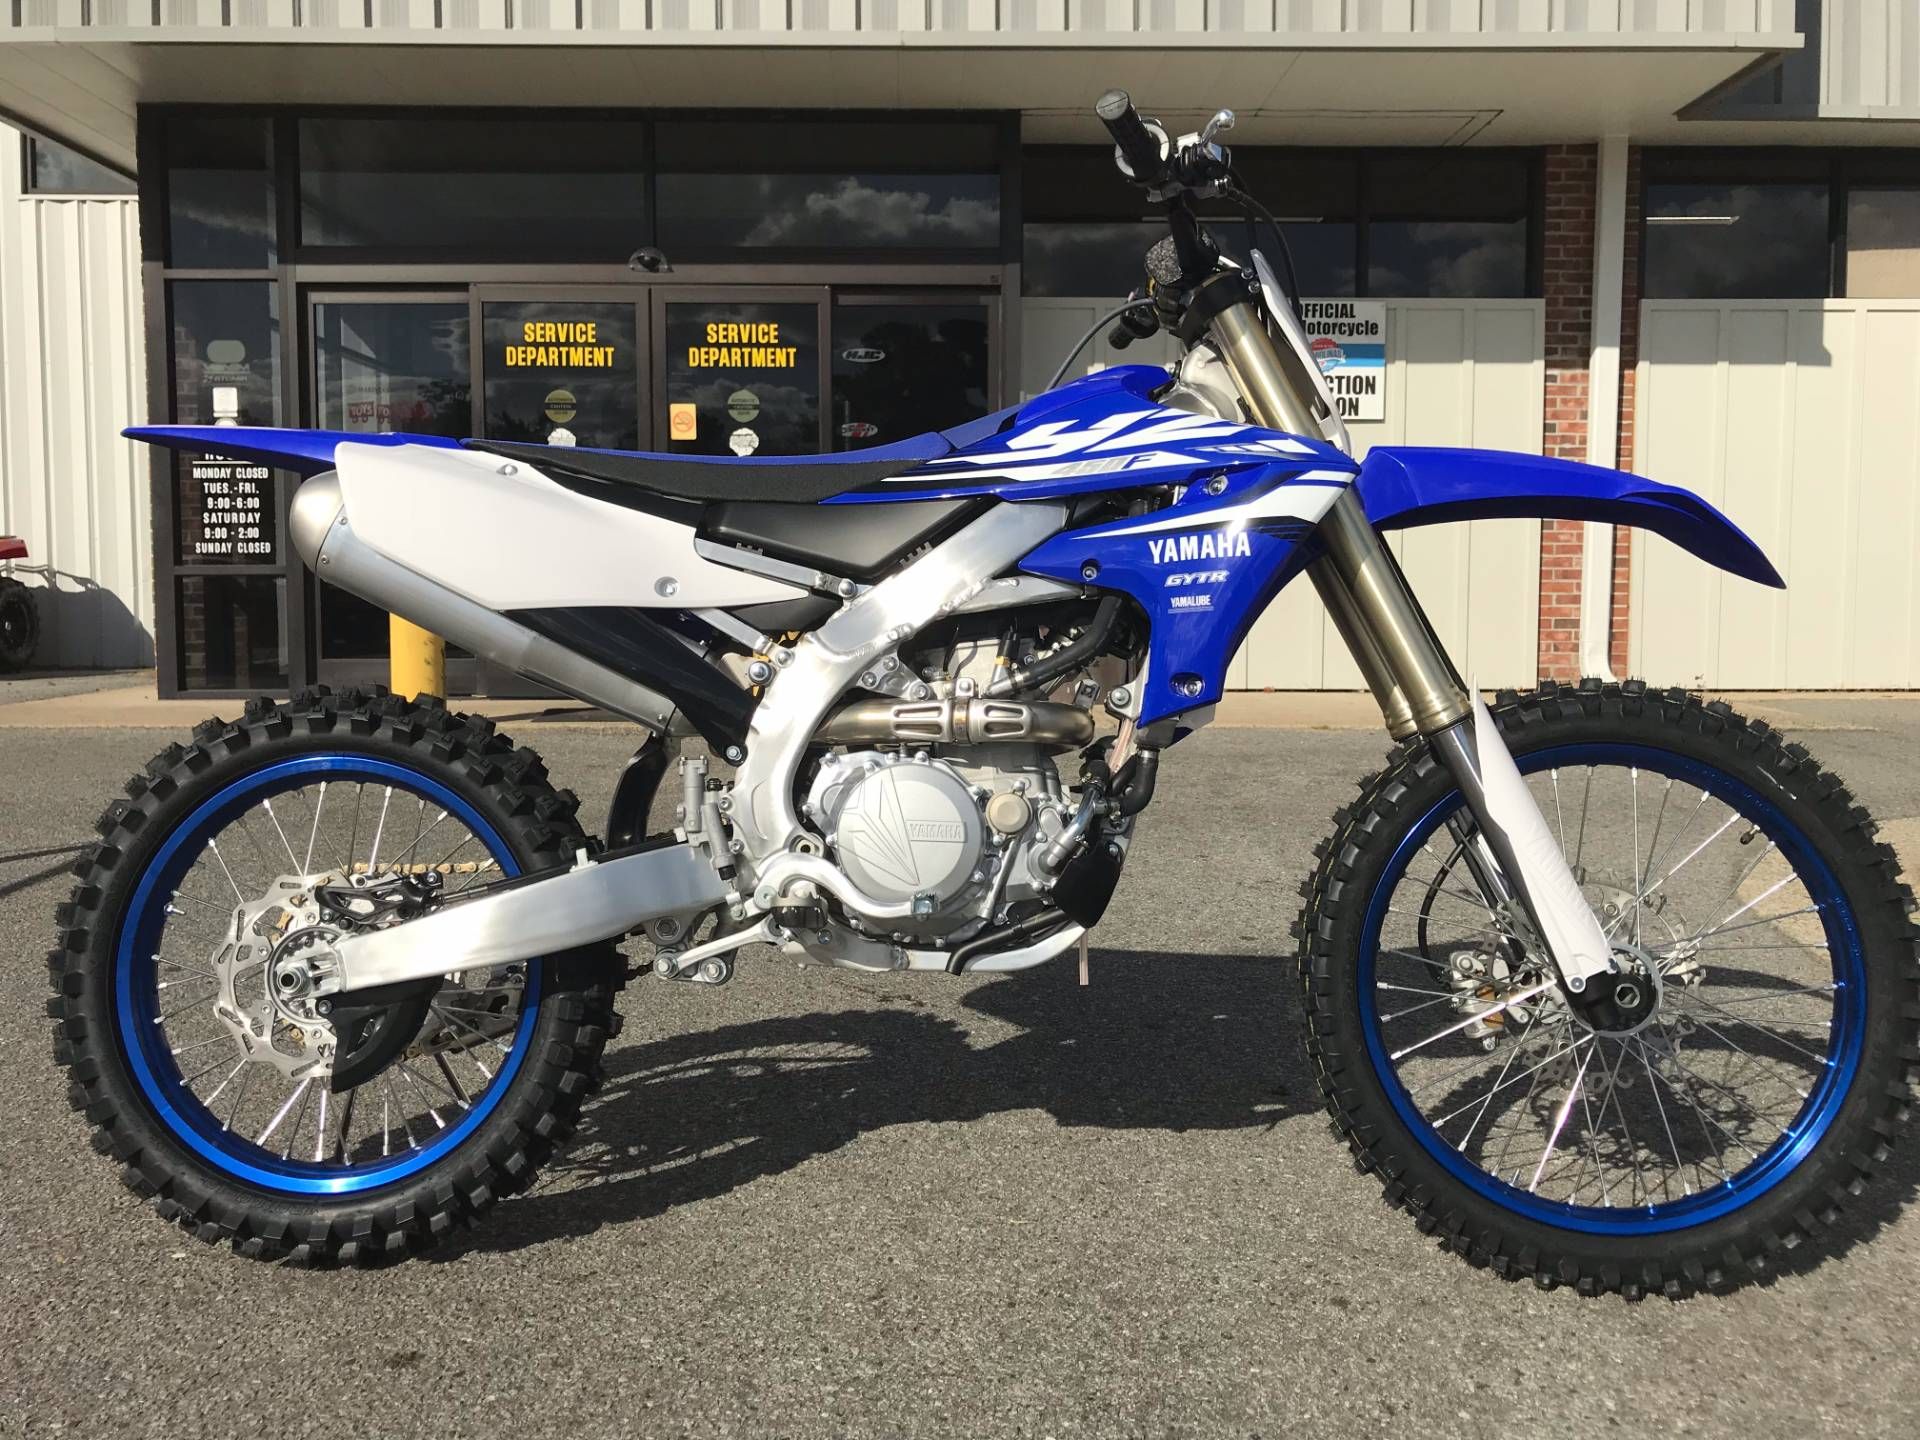 New 2018 yamaha yz450f motorcycles in greenville nc for New yamaha 450